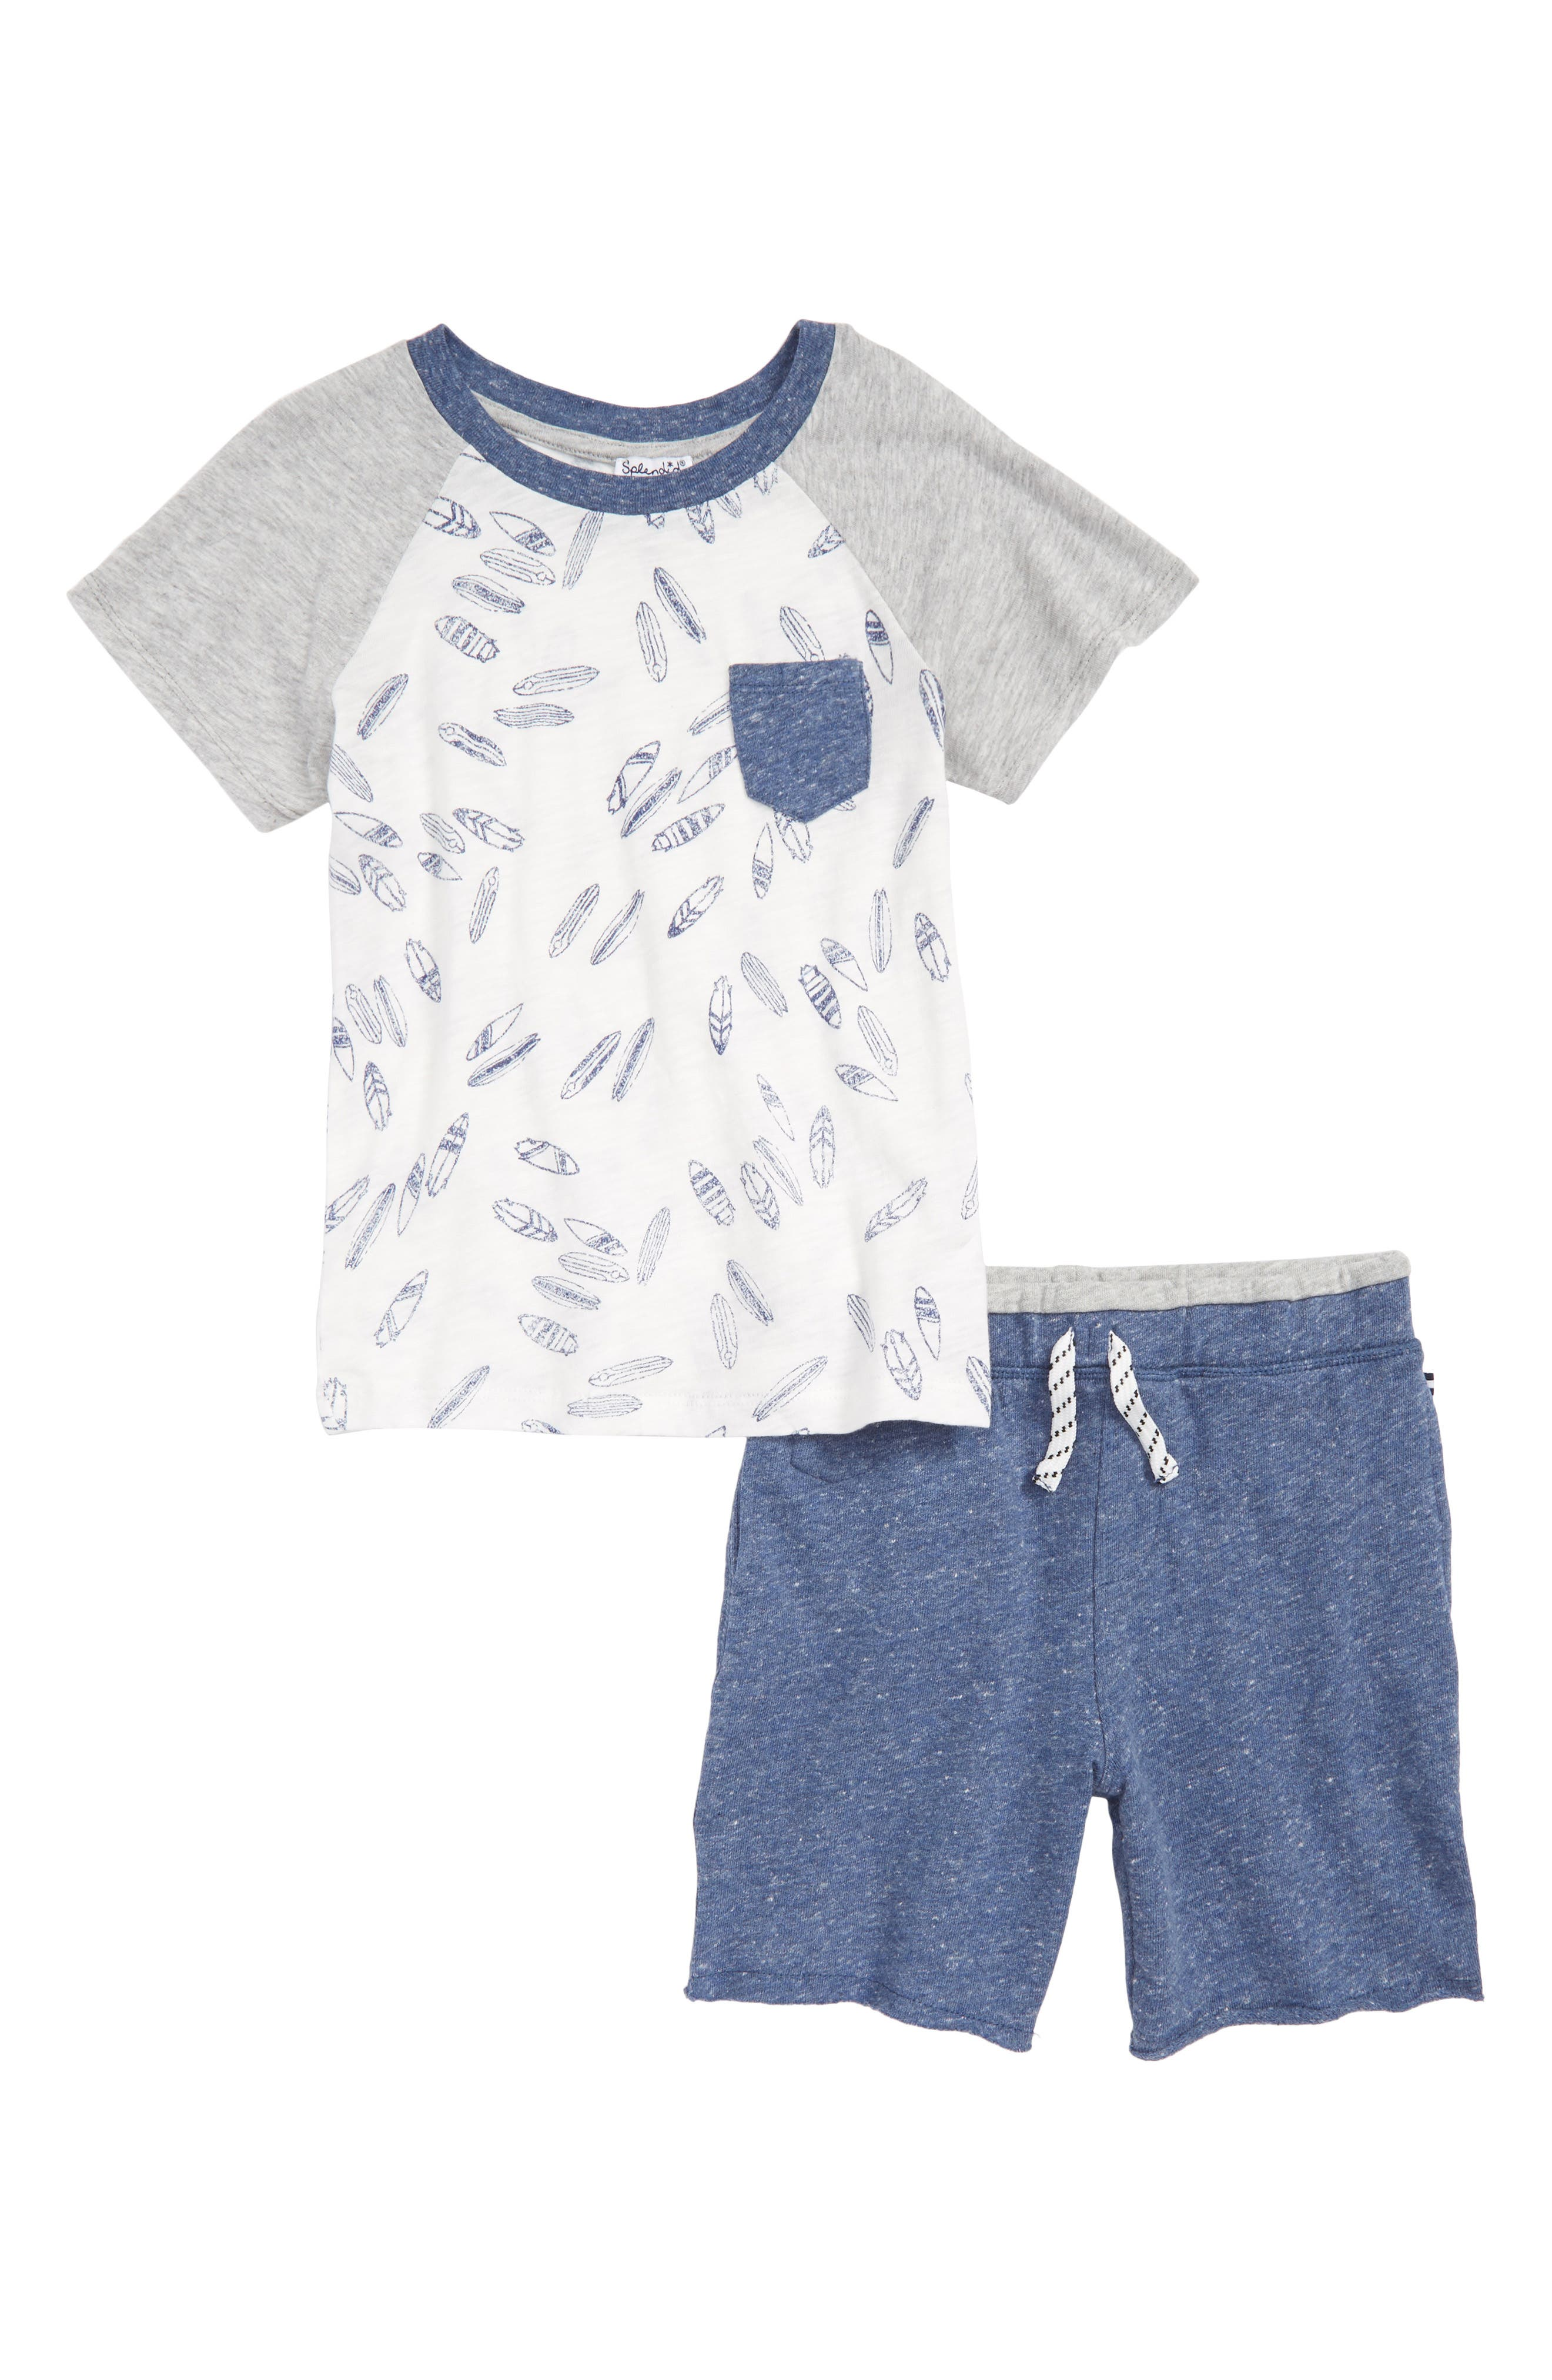 Splendid Surfboard T-Shirt & Shorts Set (Toddler Boys)